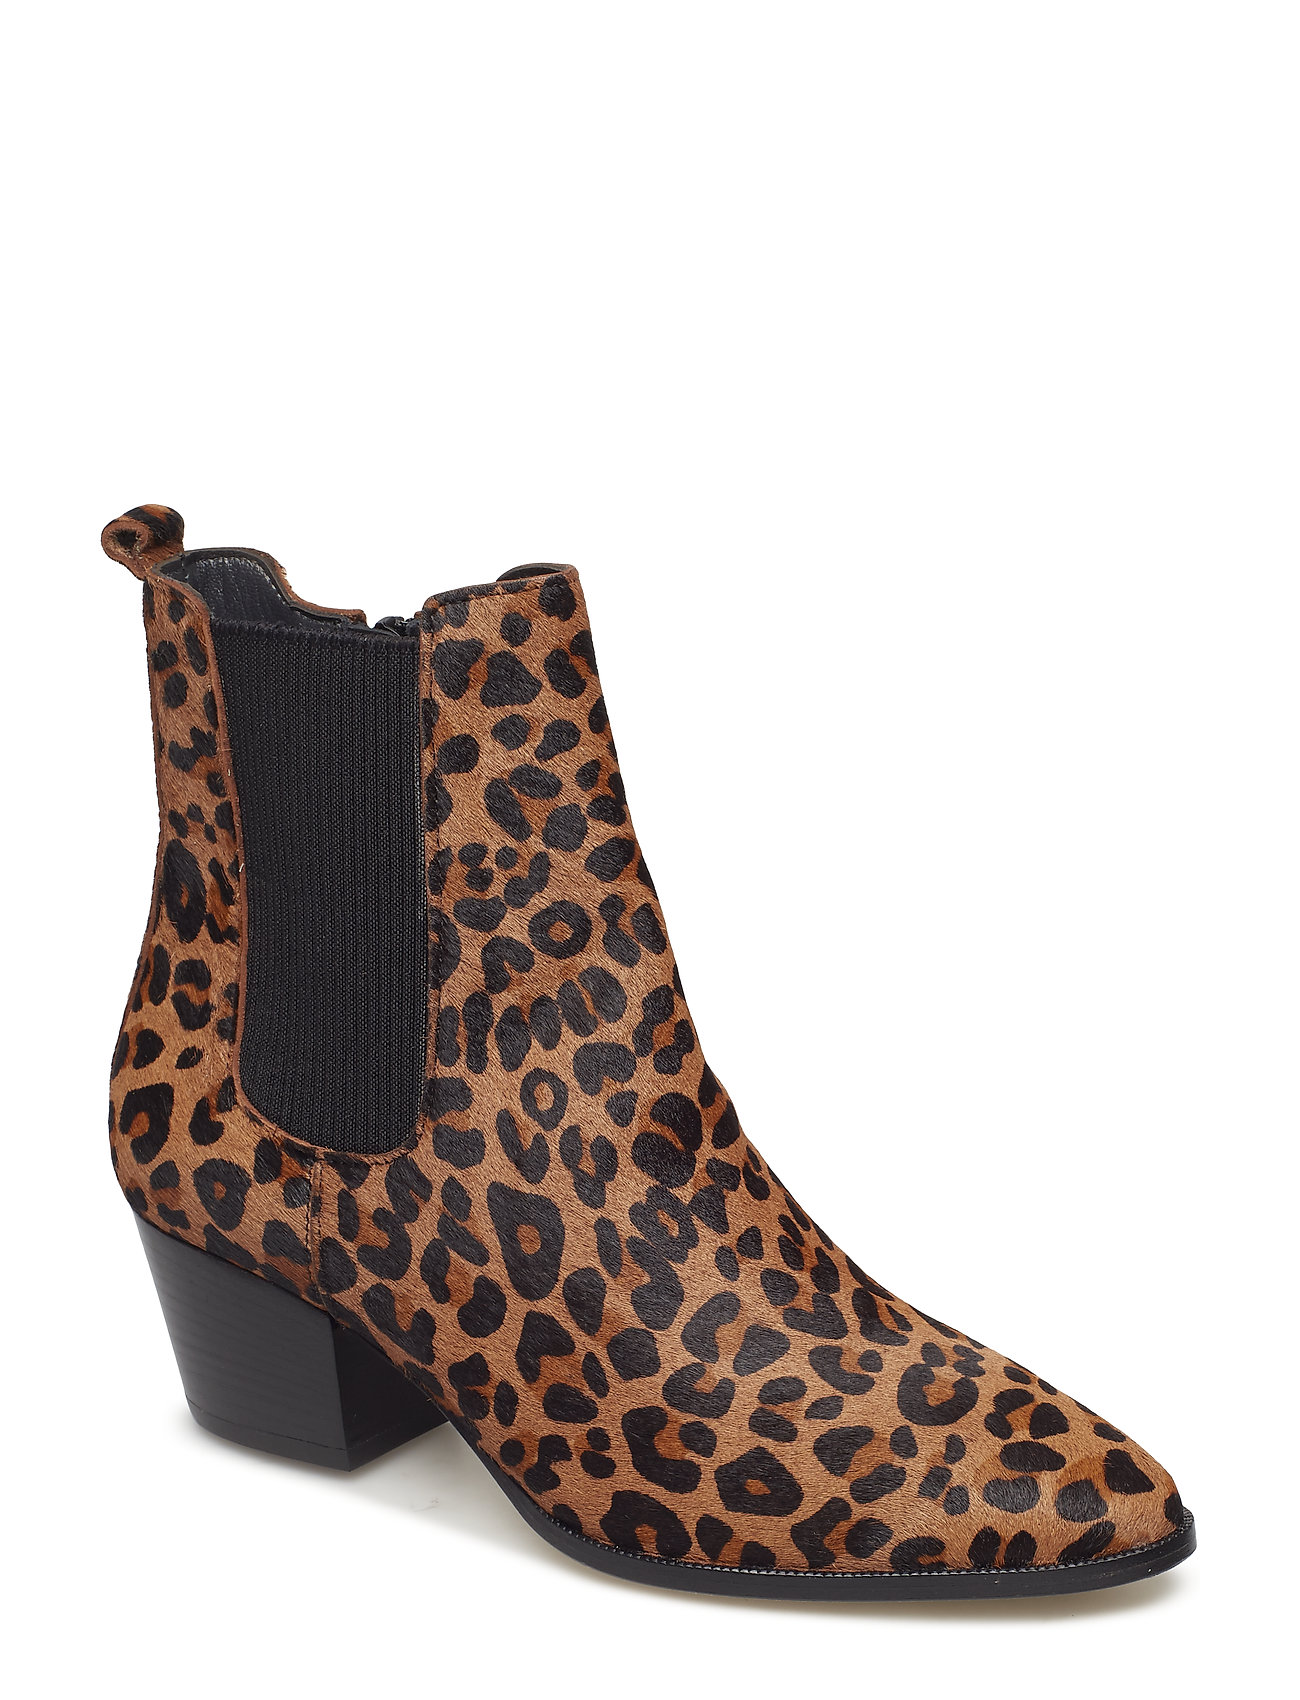 Image of Booties - Block Heel - With Elas Shoes Boots Ankle Boots Ankle Boot - Heel Brun ANGULUS (3473529309)